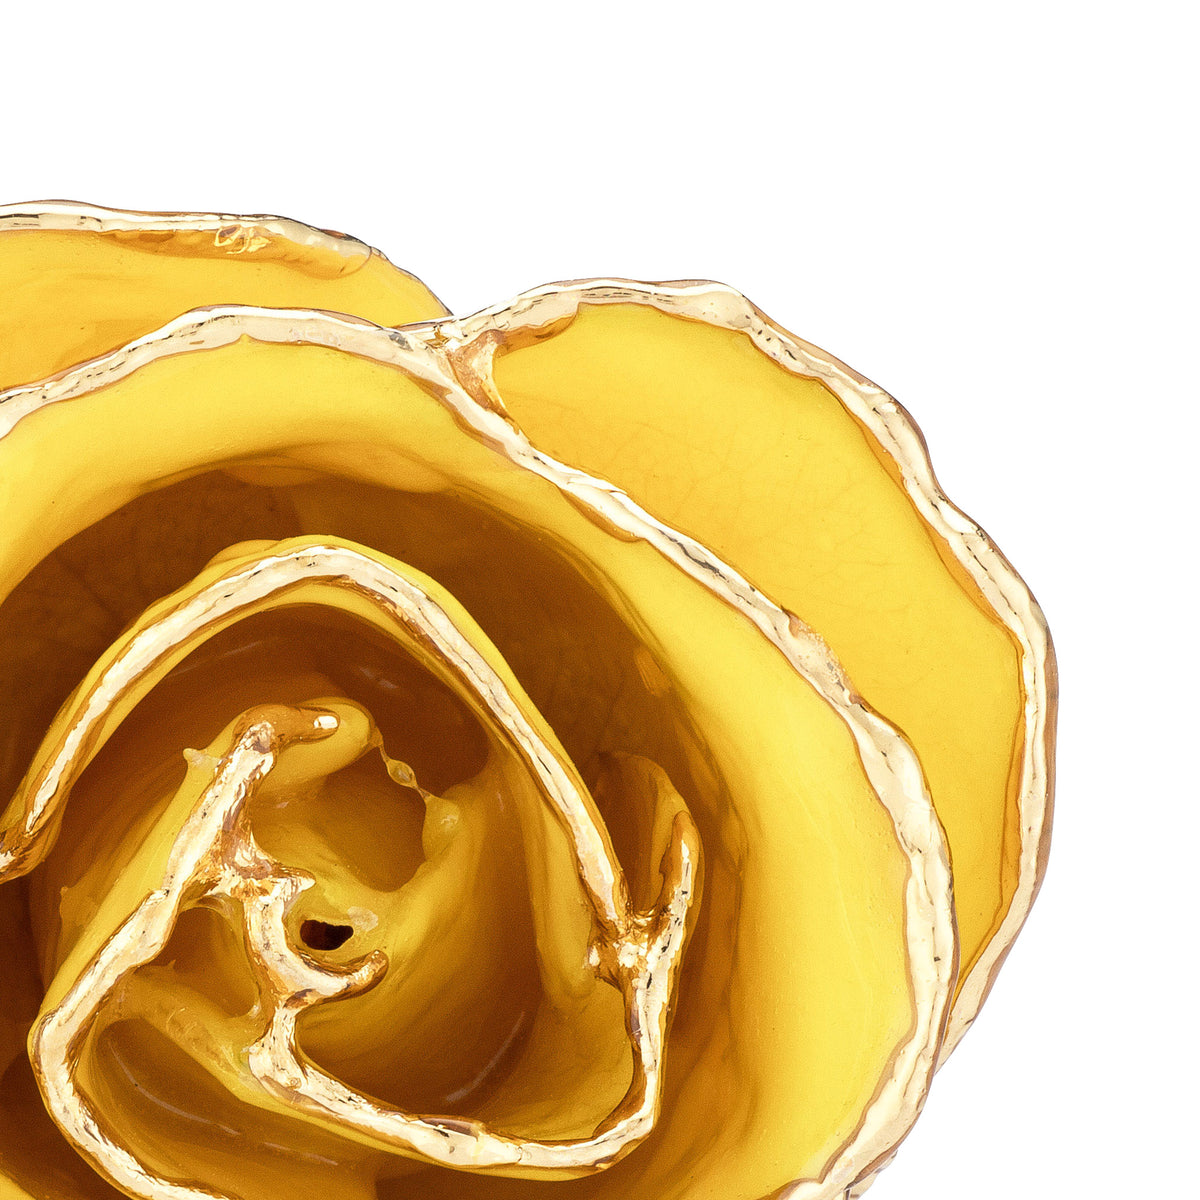 24K Gold Trimmed Forever Rose with Yellow Petals. View of Stem, Leaves, and Rose Petals and Showing Detail of Gold Trim. zoomed in view from top.